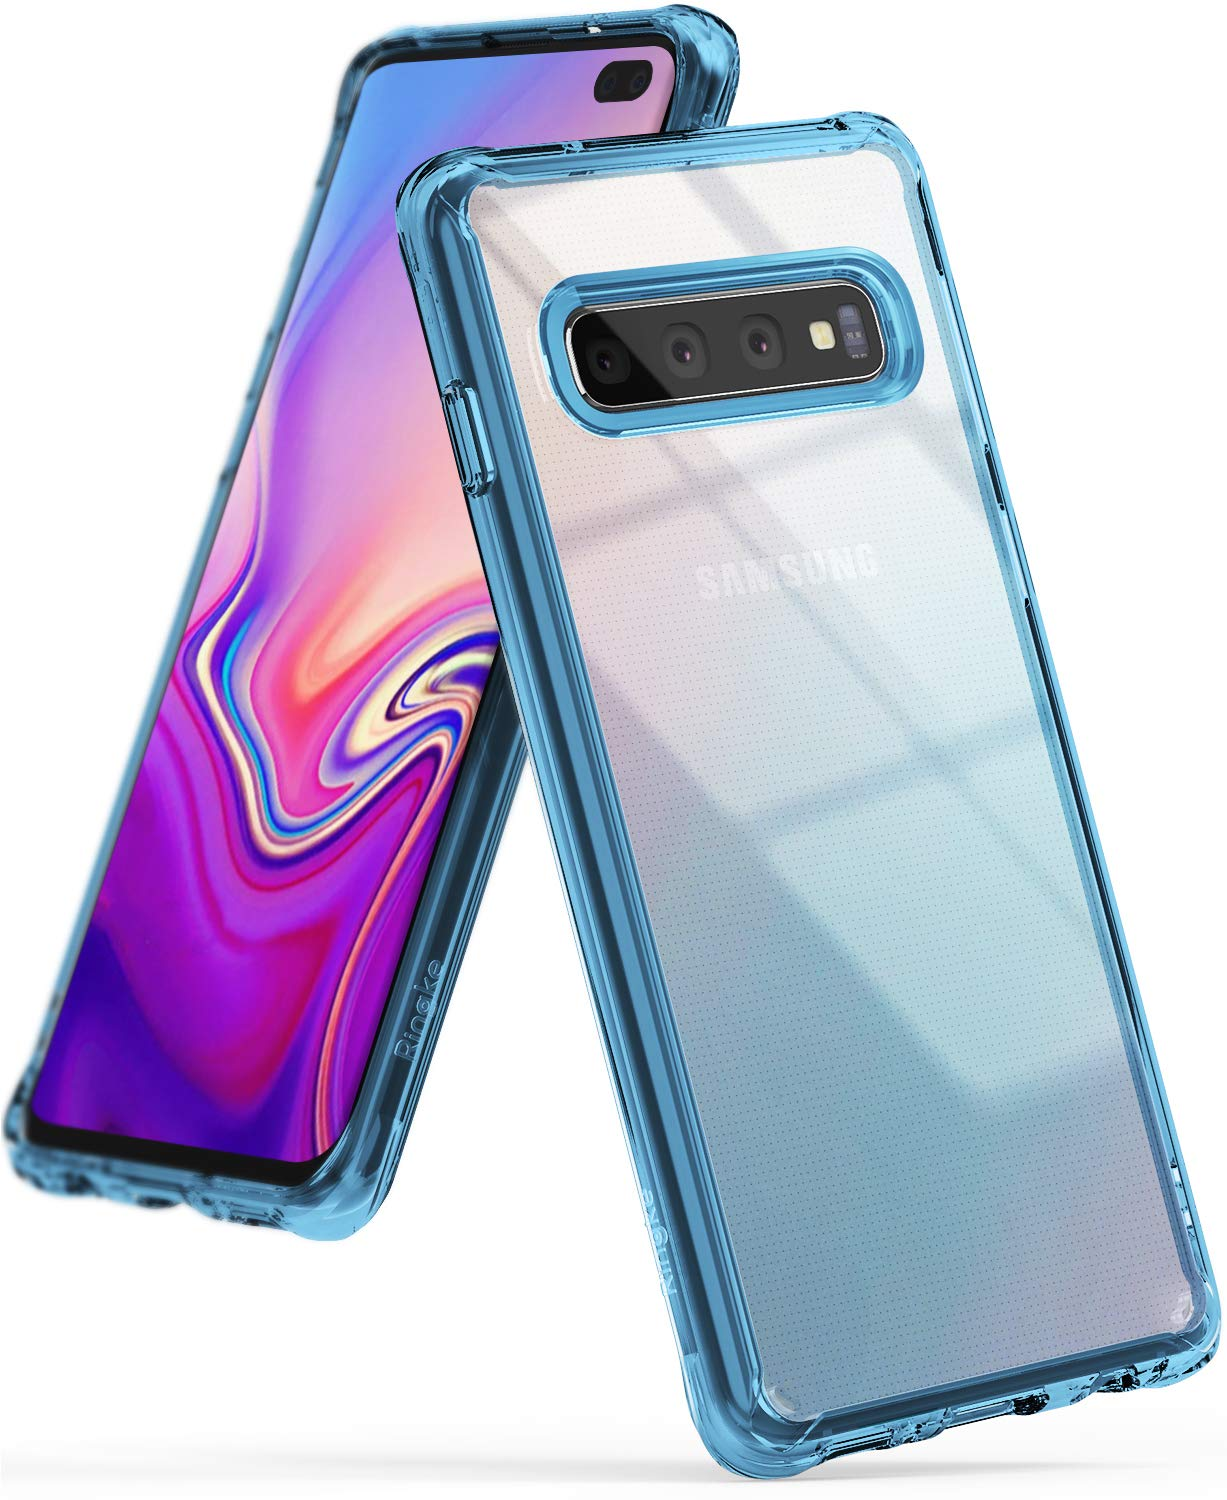 ringke galaxy s10 plus fusion case aqua blue